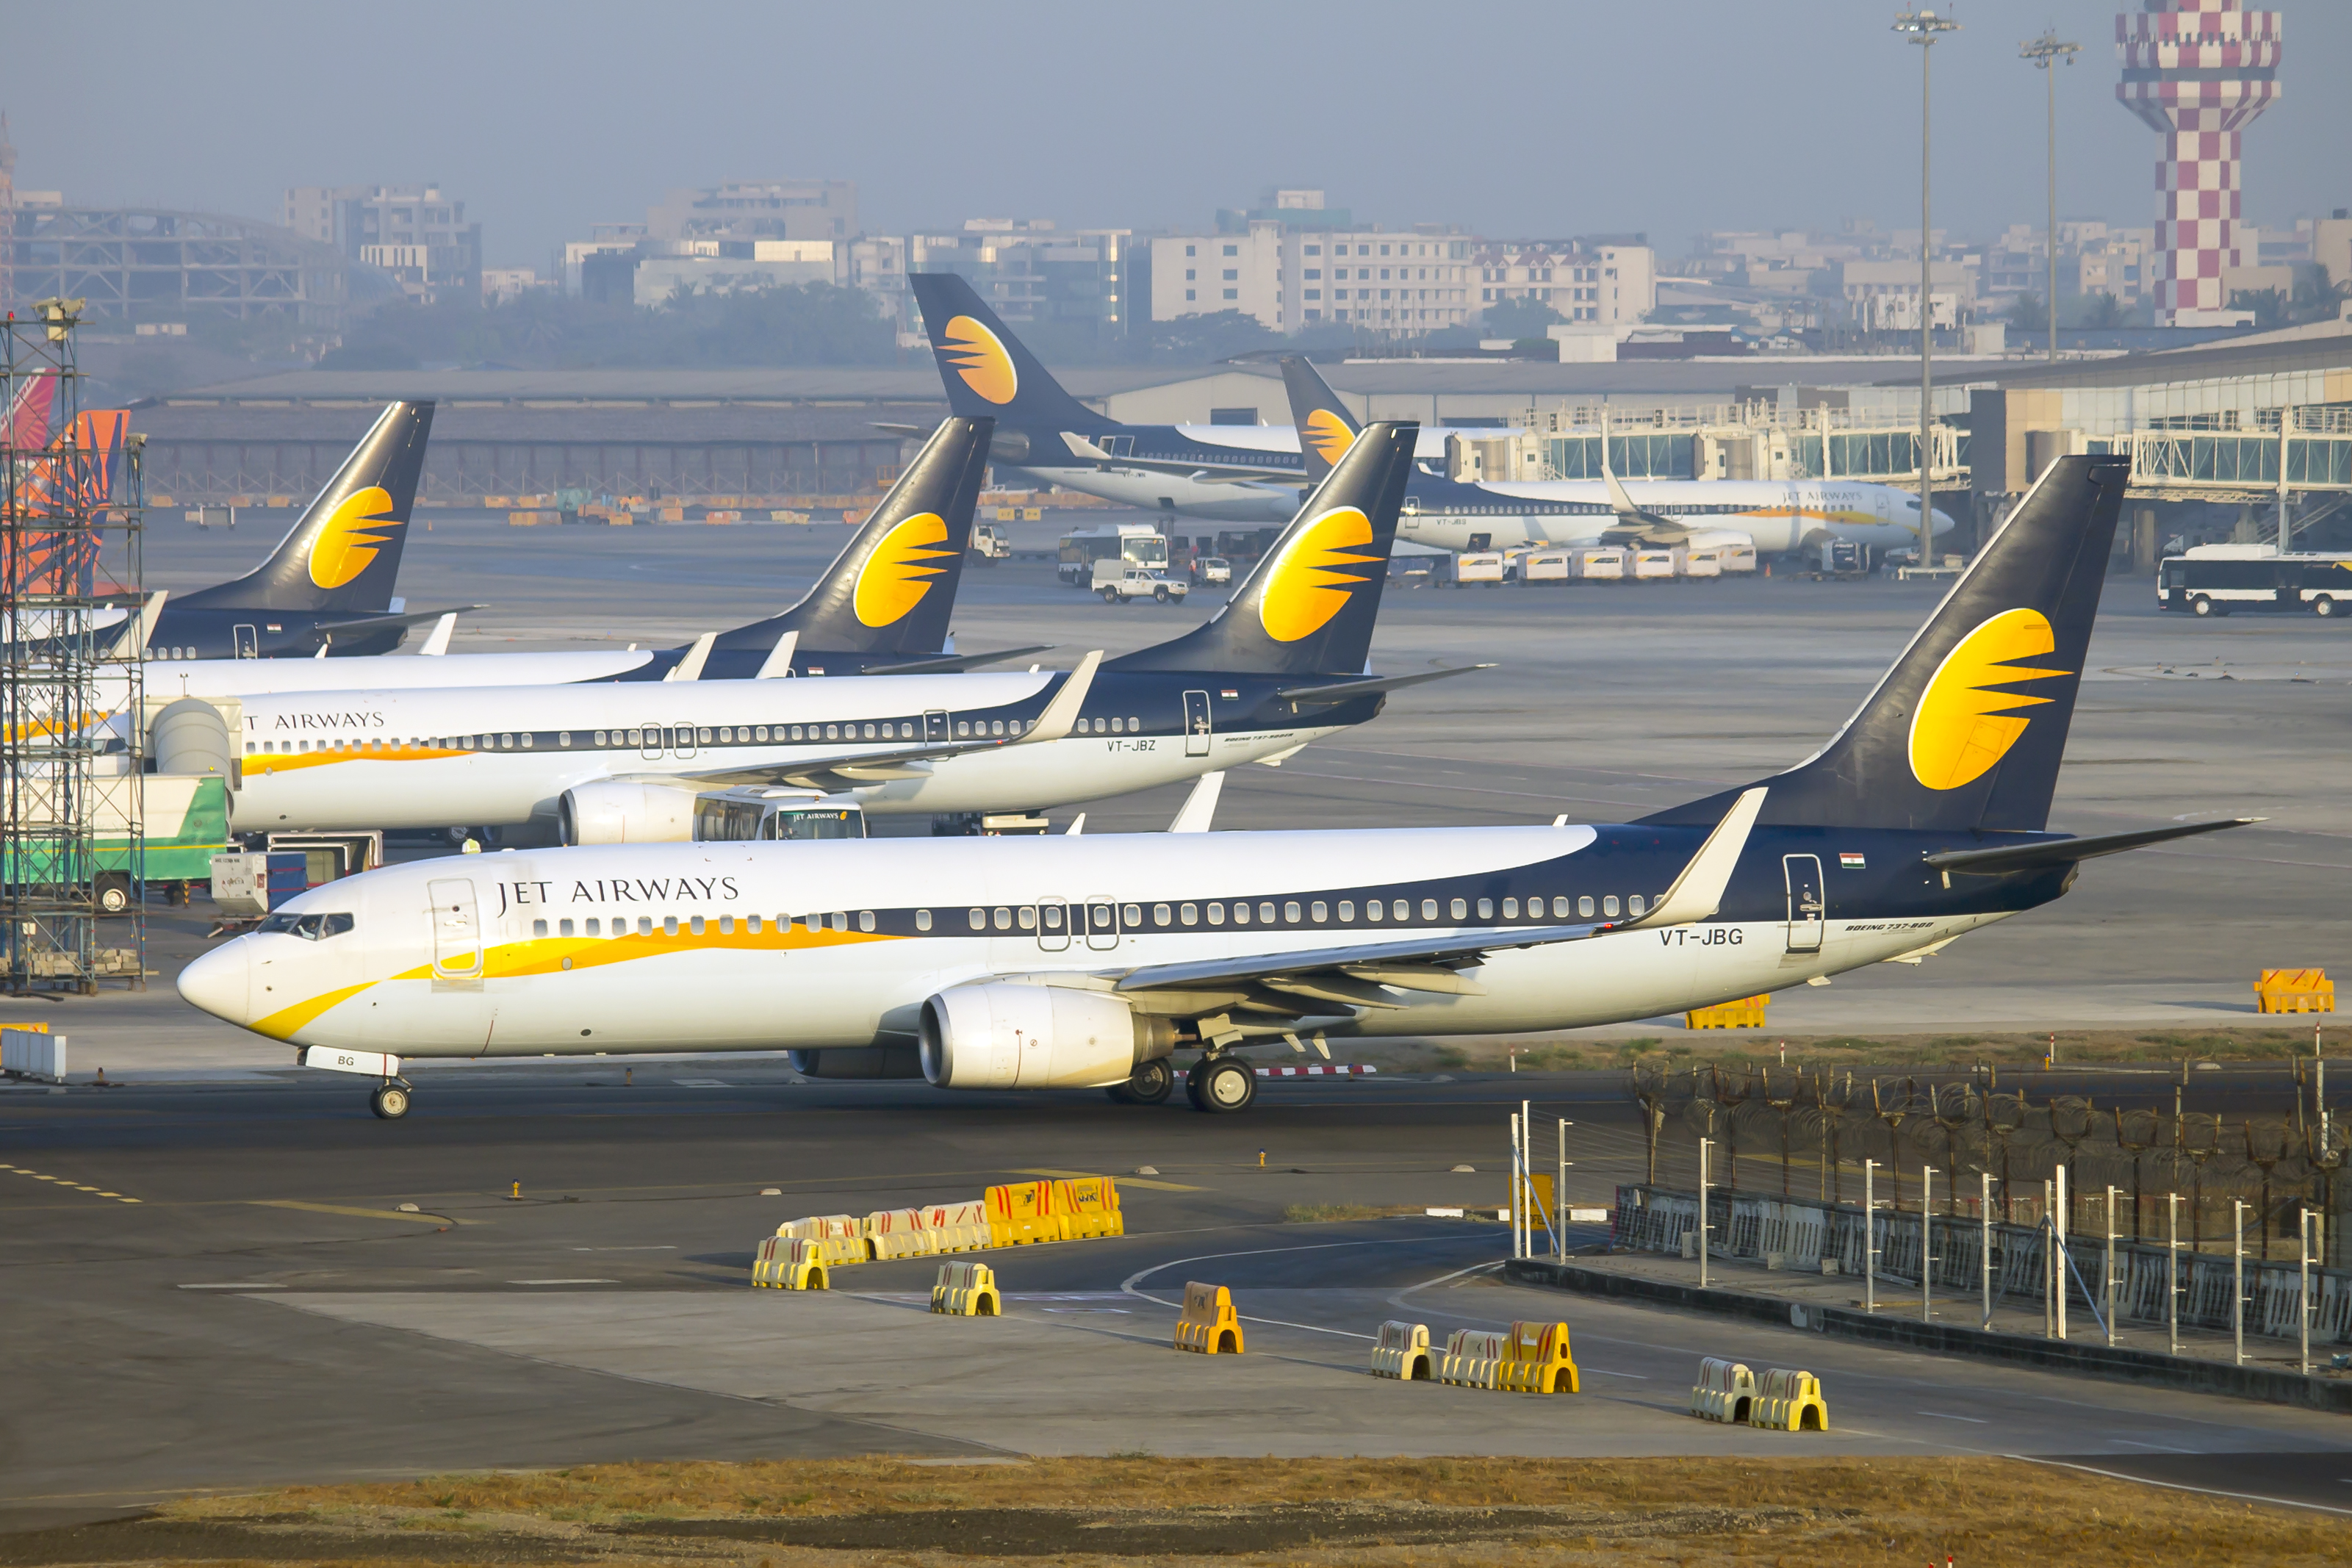 Potential bidders for Jet Airways Ltd have so far failed to show any firm interest in bailing out the struggling airline, a source involved in the matter said, increasing the likelihood that the company will face bankruptcy proceedings.